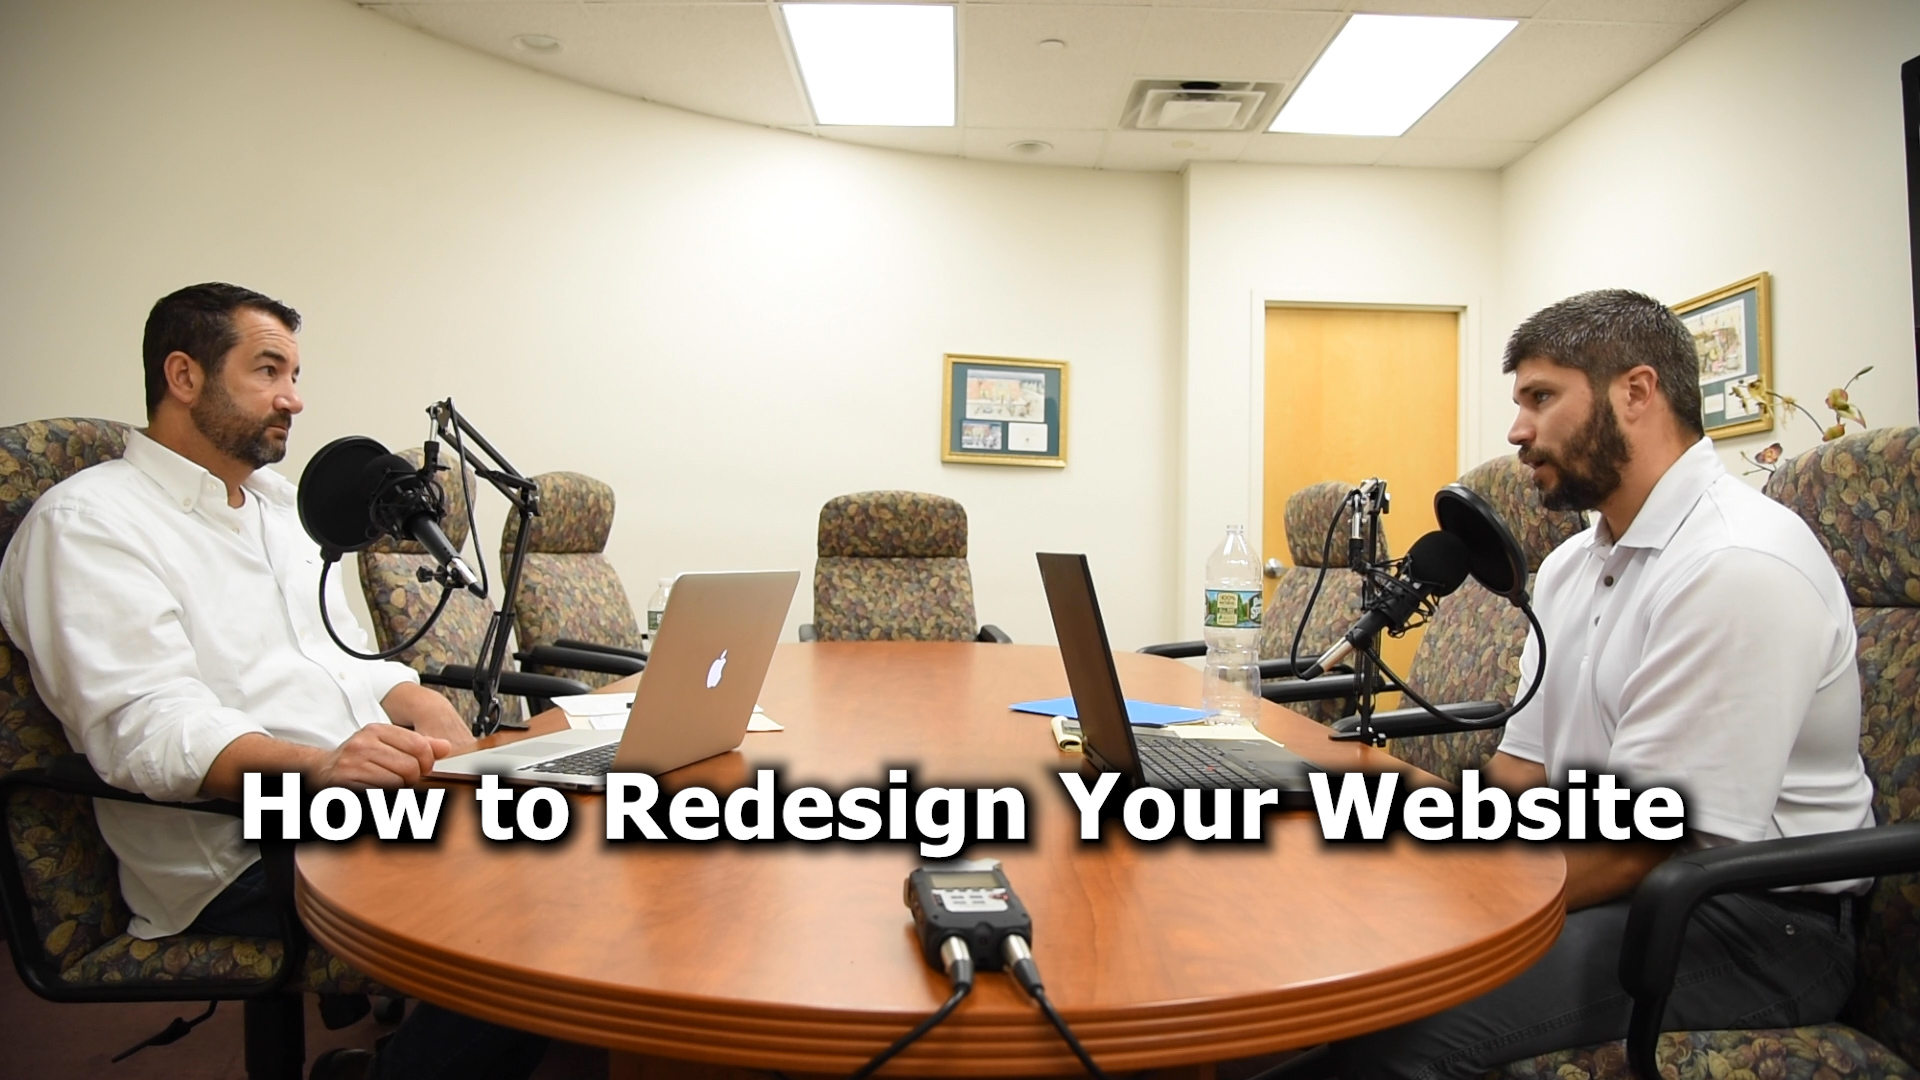 The Right Way to Redesign Your Website - The Messengers Podcast